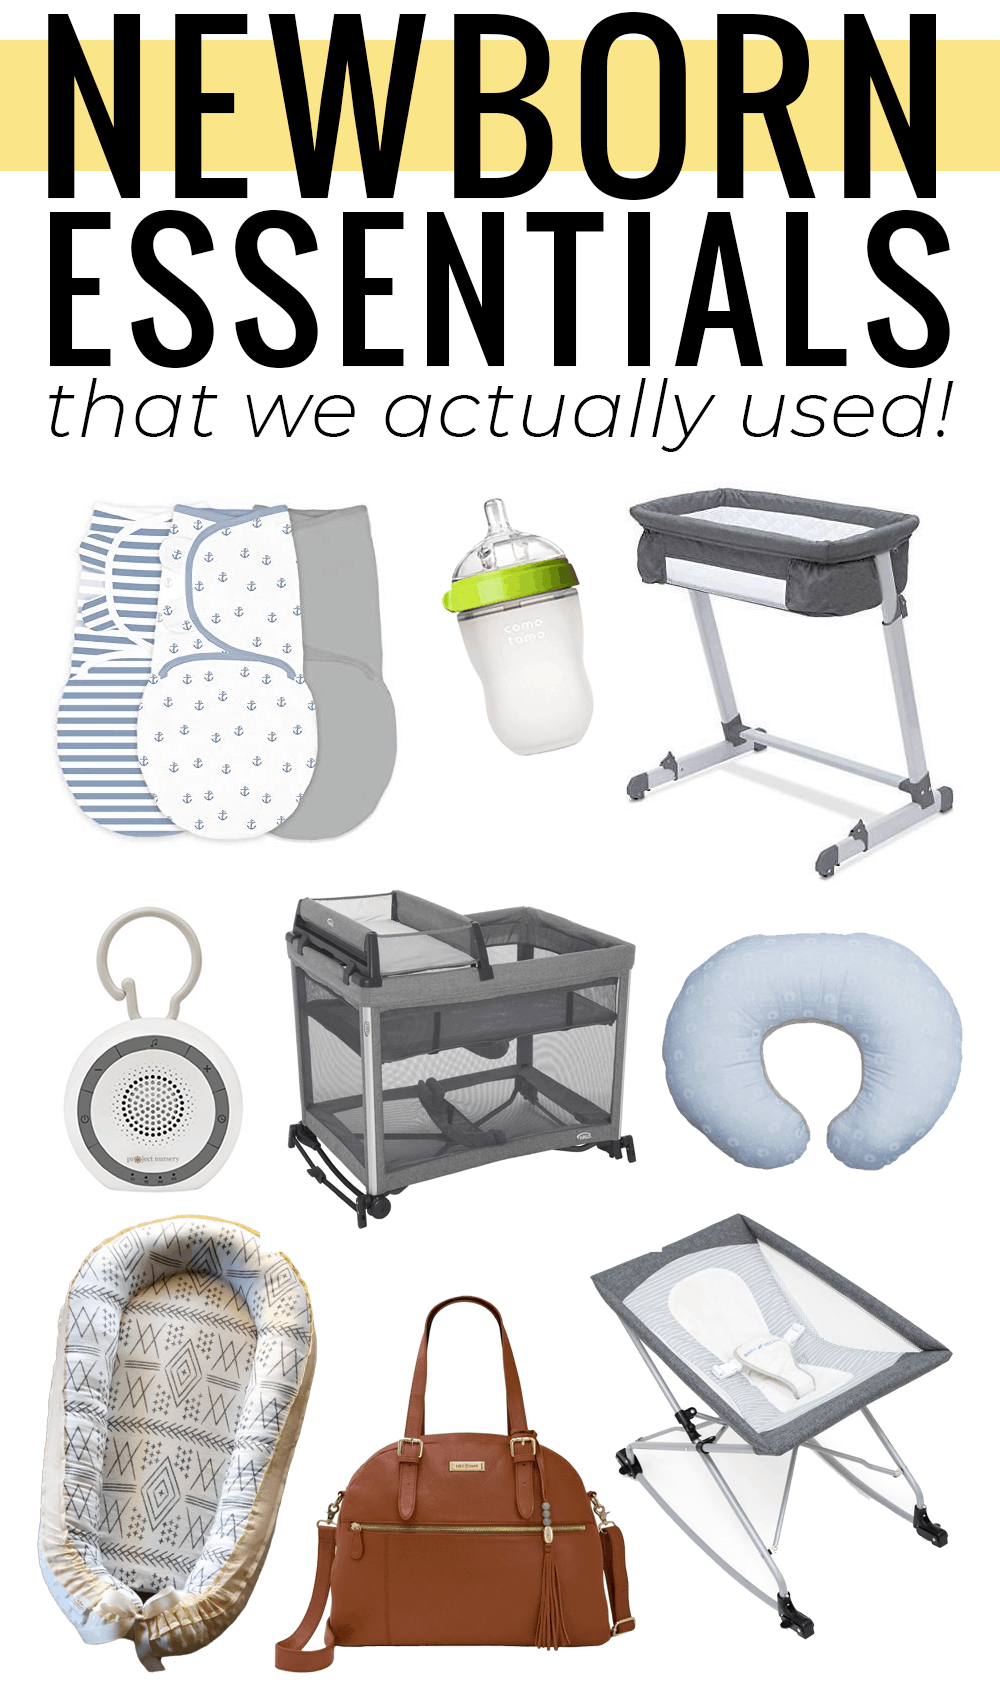 Houston blogger Meg O. shares her newborn essentials 2019 edition. All the baby must have items she actually used.